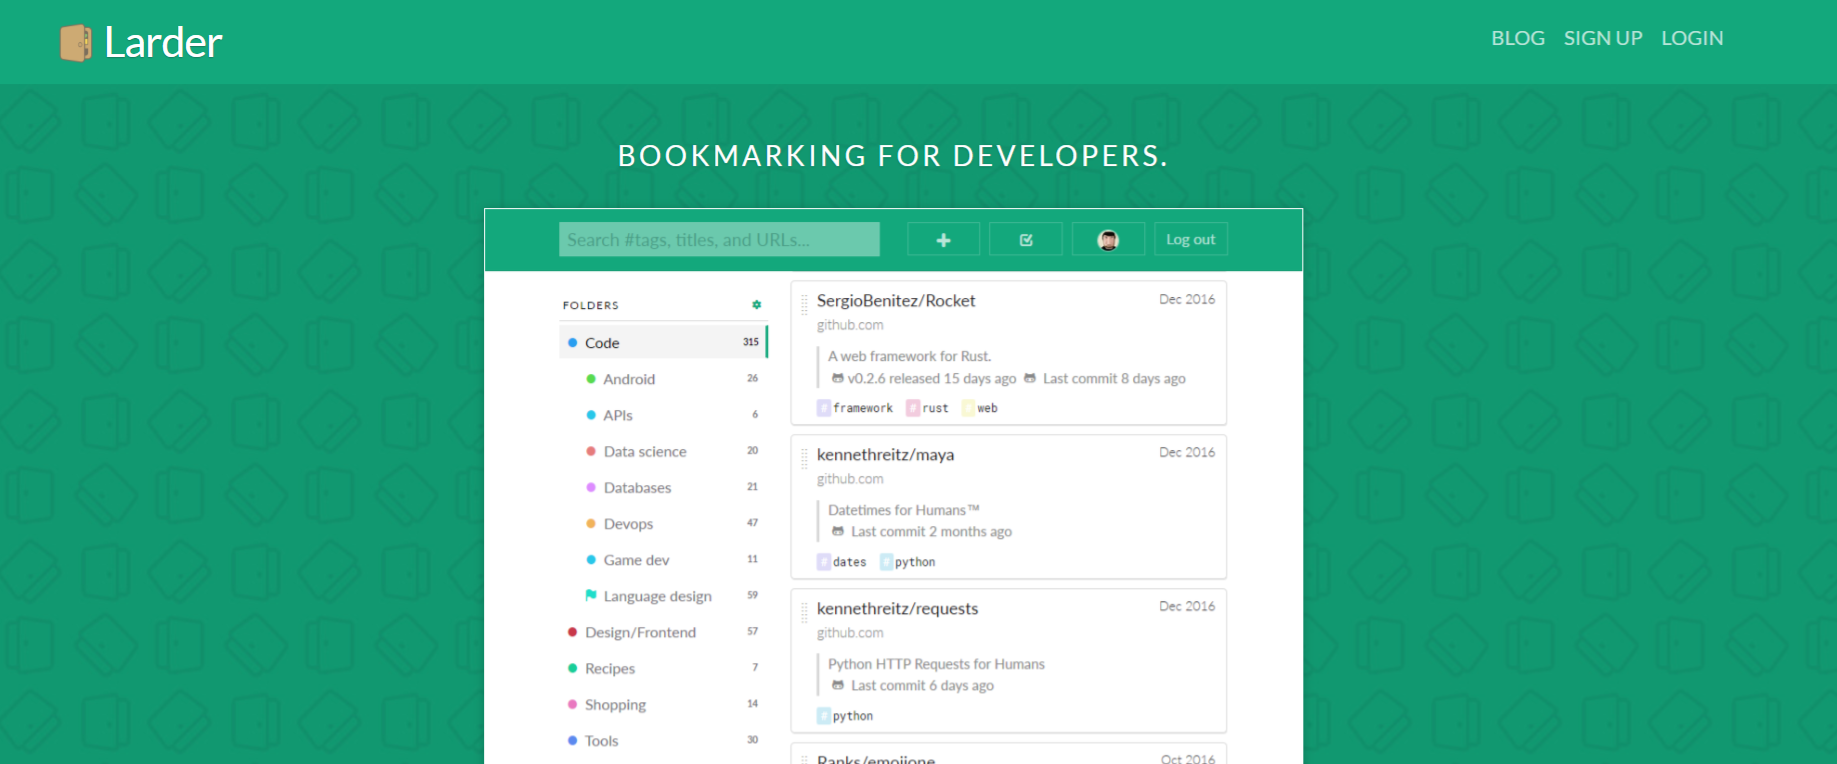 Larder: Collaborative bookmarking tools